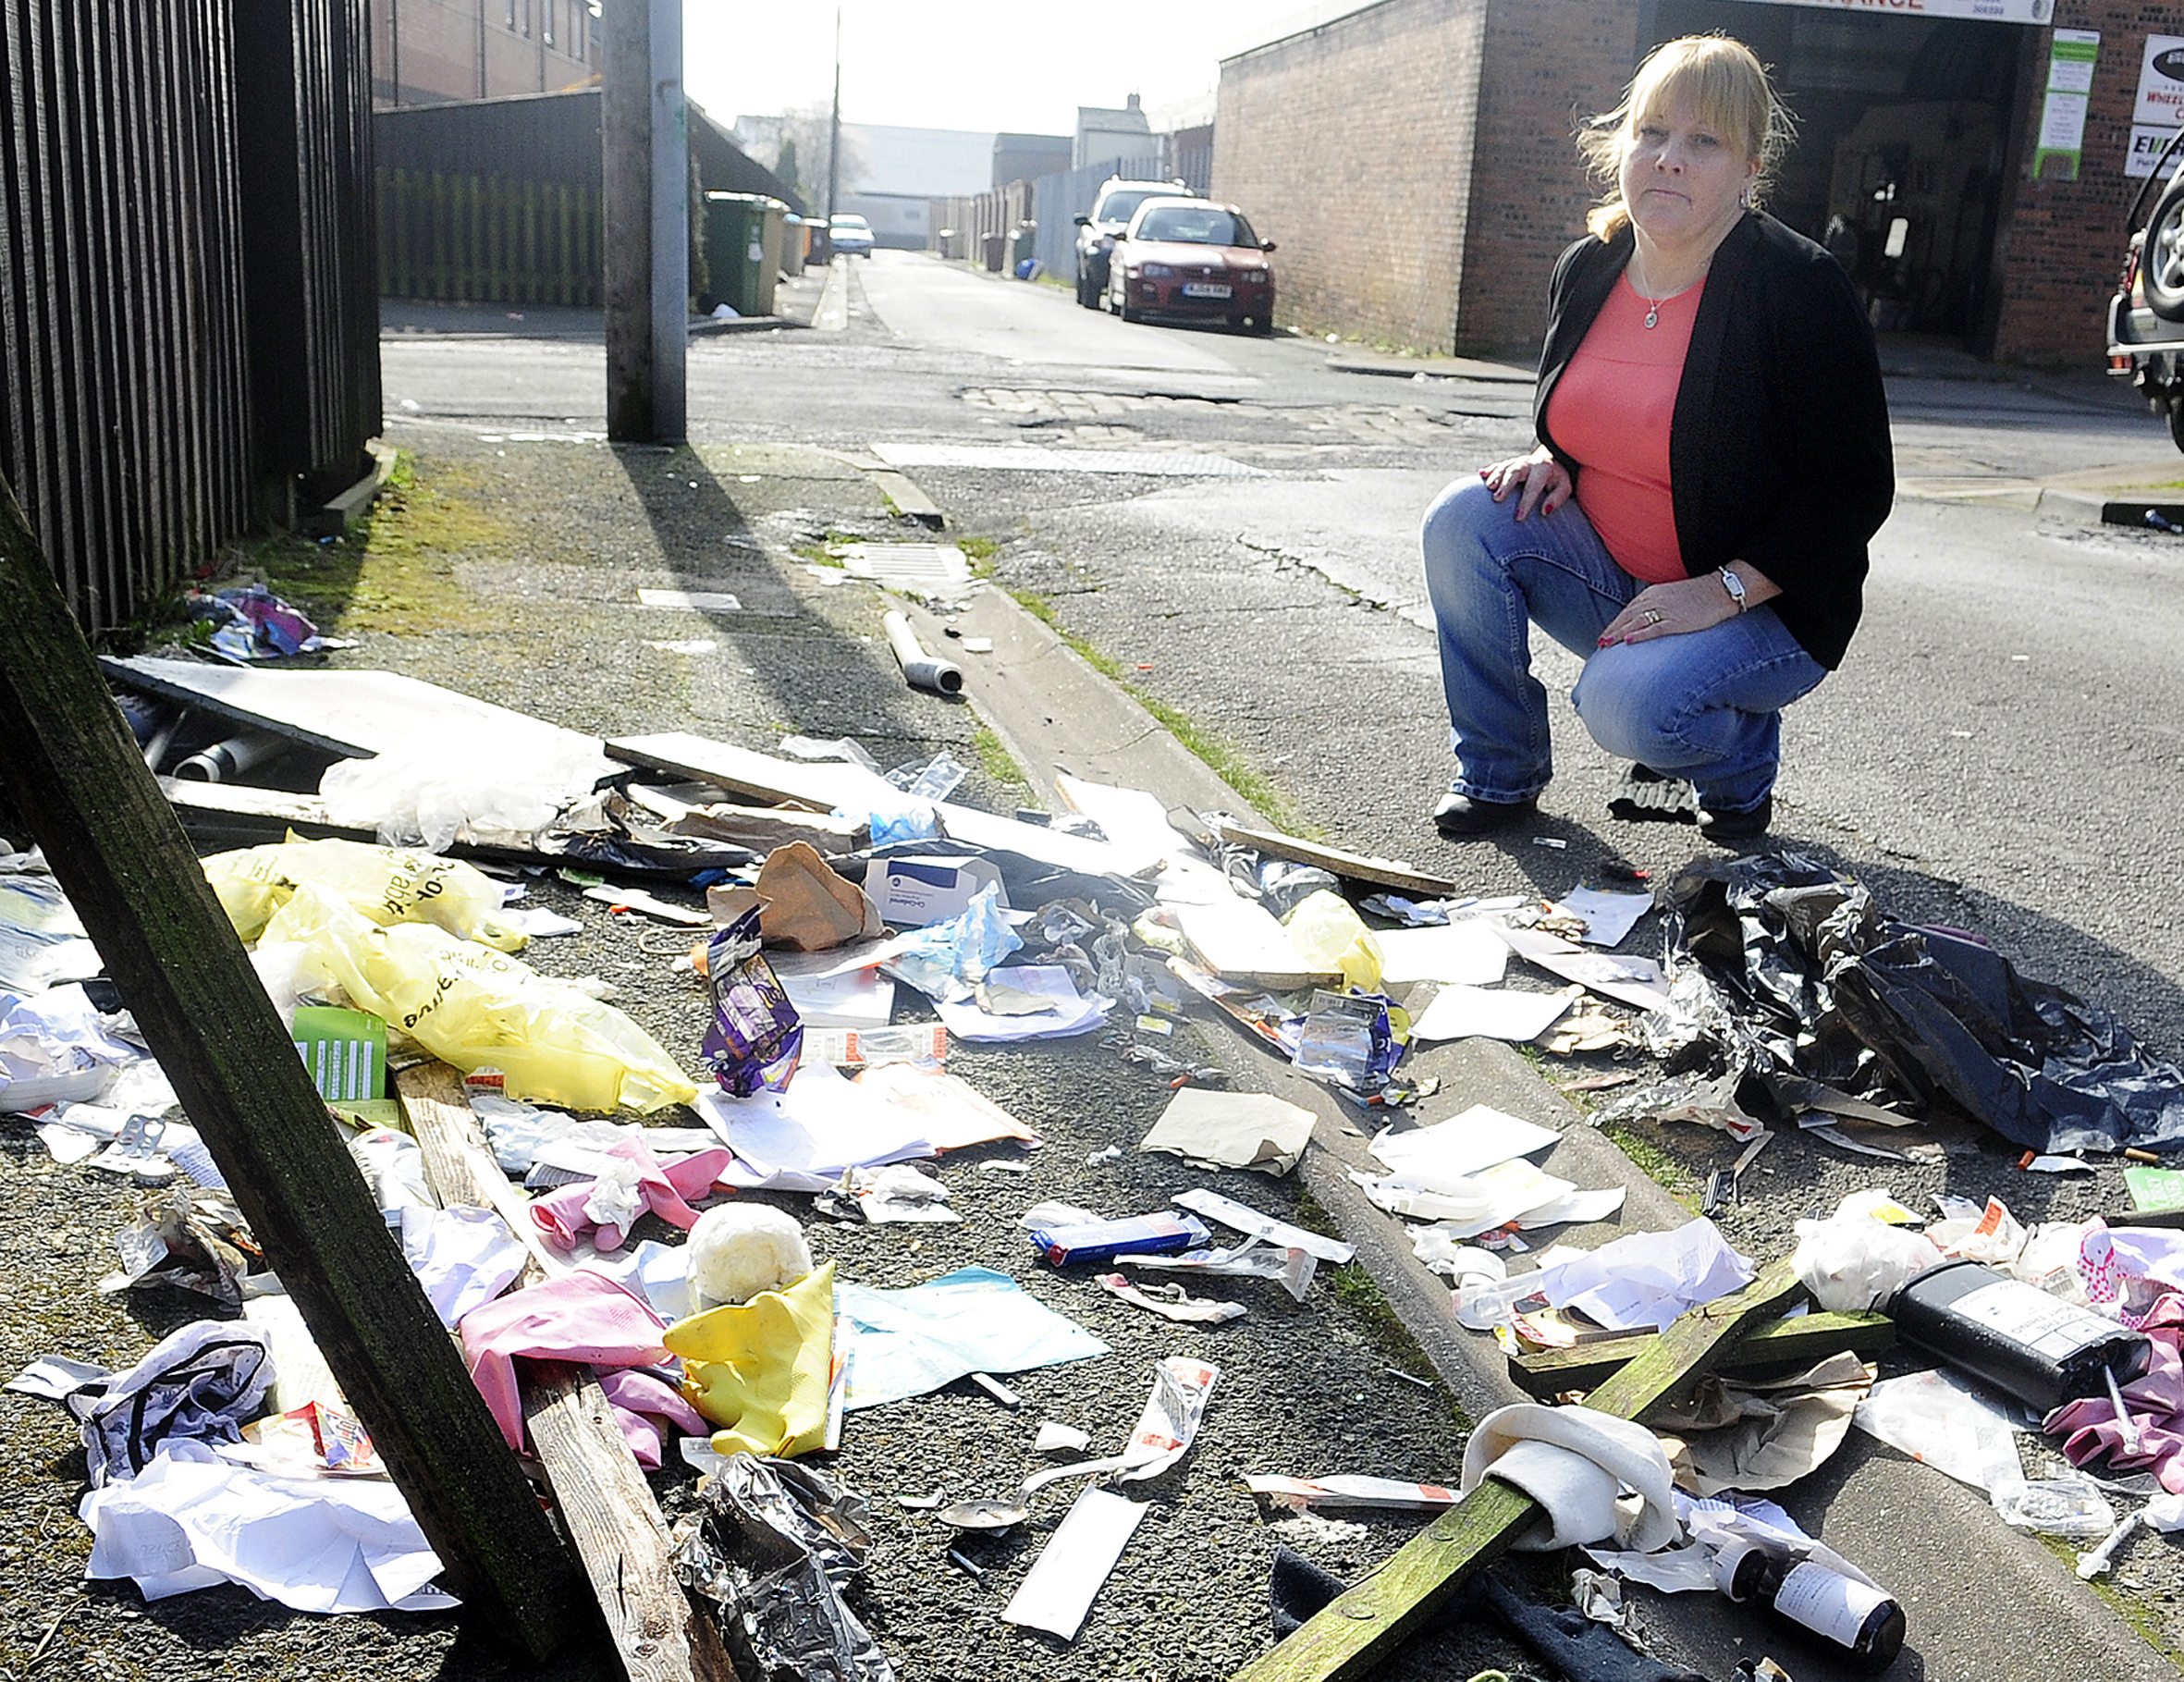 Kids playing among needles and methadone bottles in Tonge Moor street